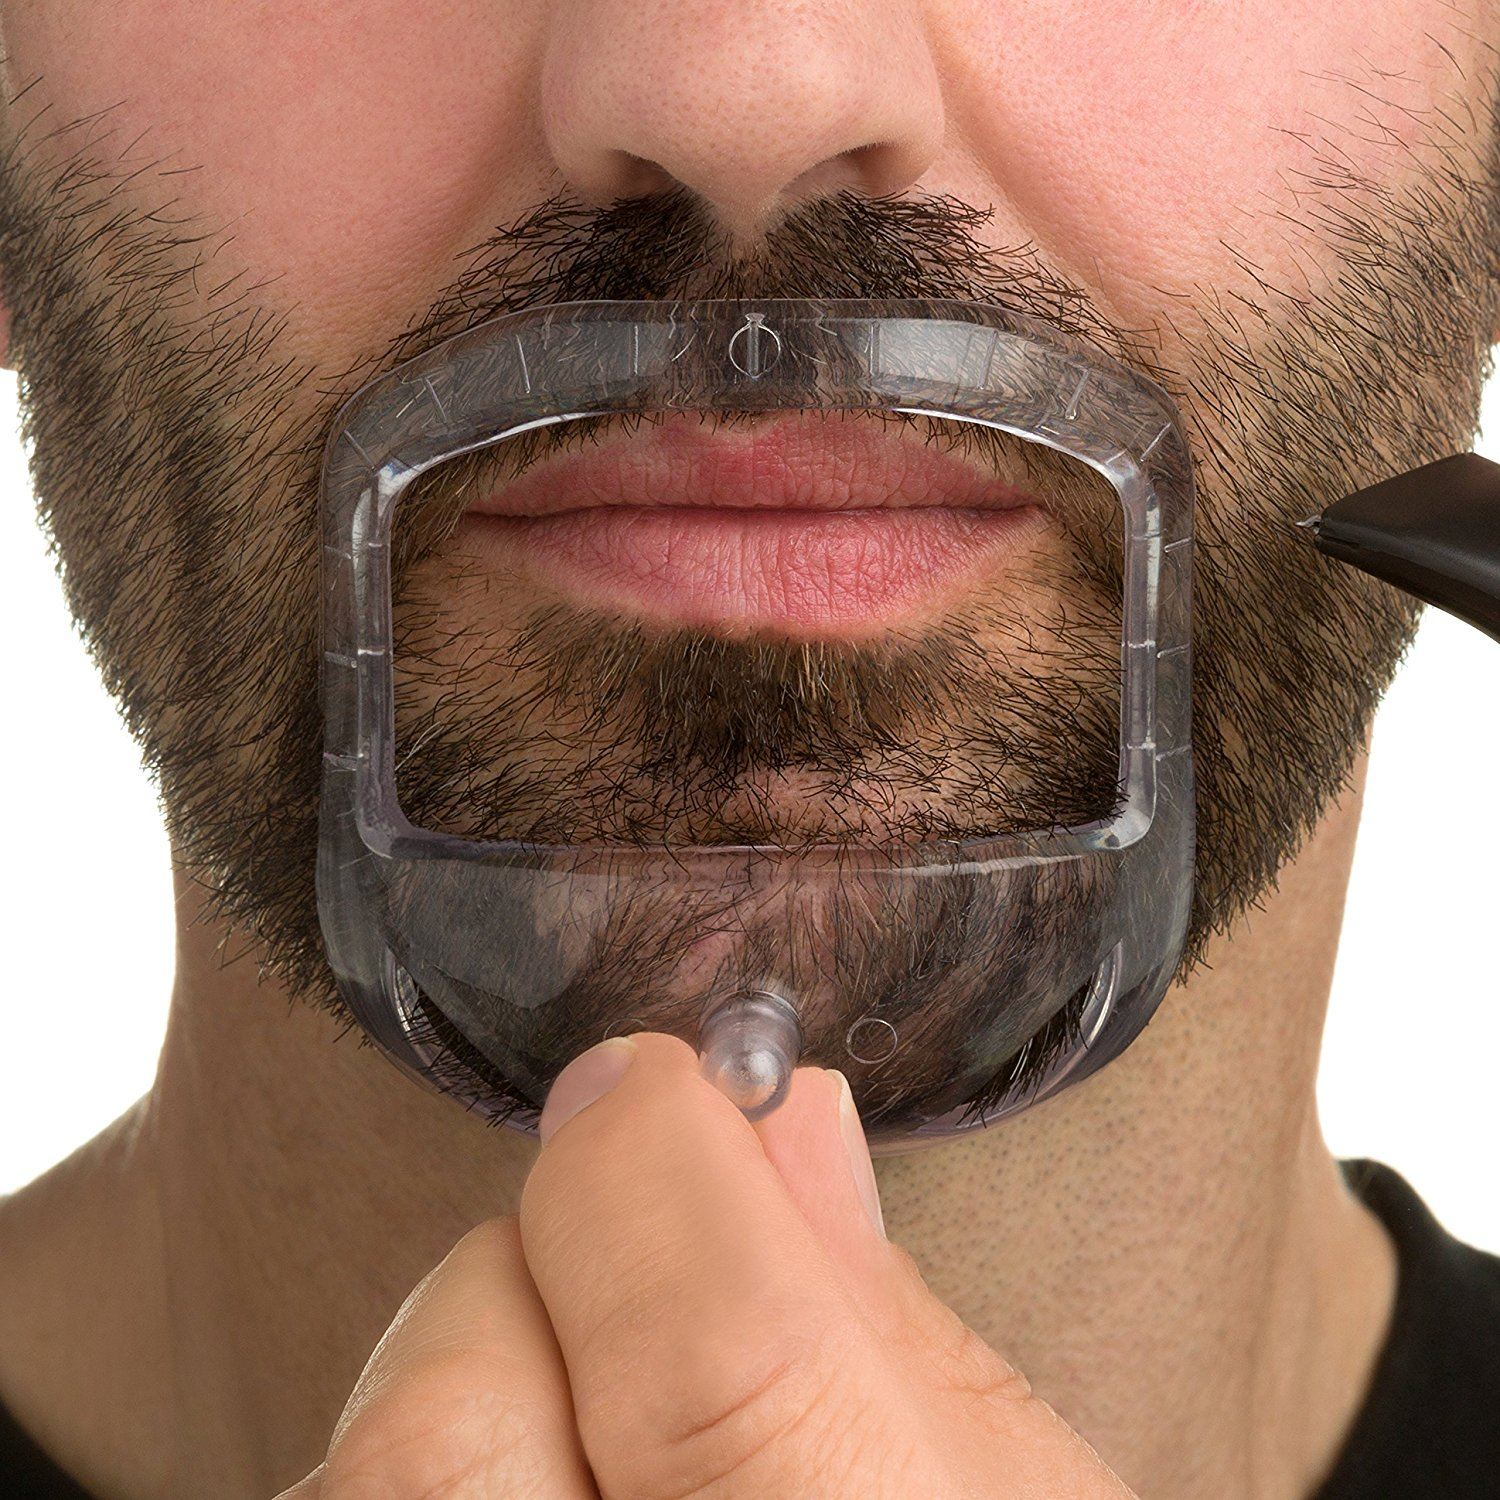 New Design 5 size Goatee Shaving Template kit - Create a Perfectly Shaped Goatee Easy to Use and Easy to Clean